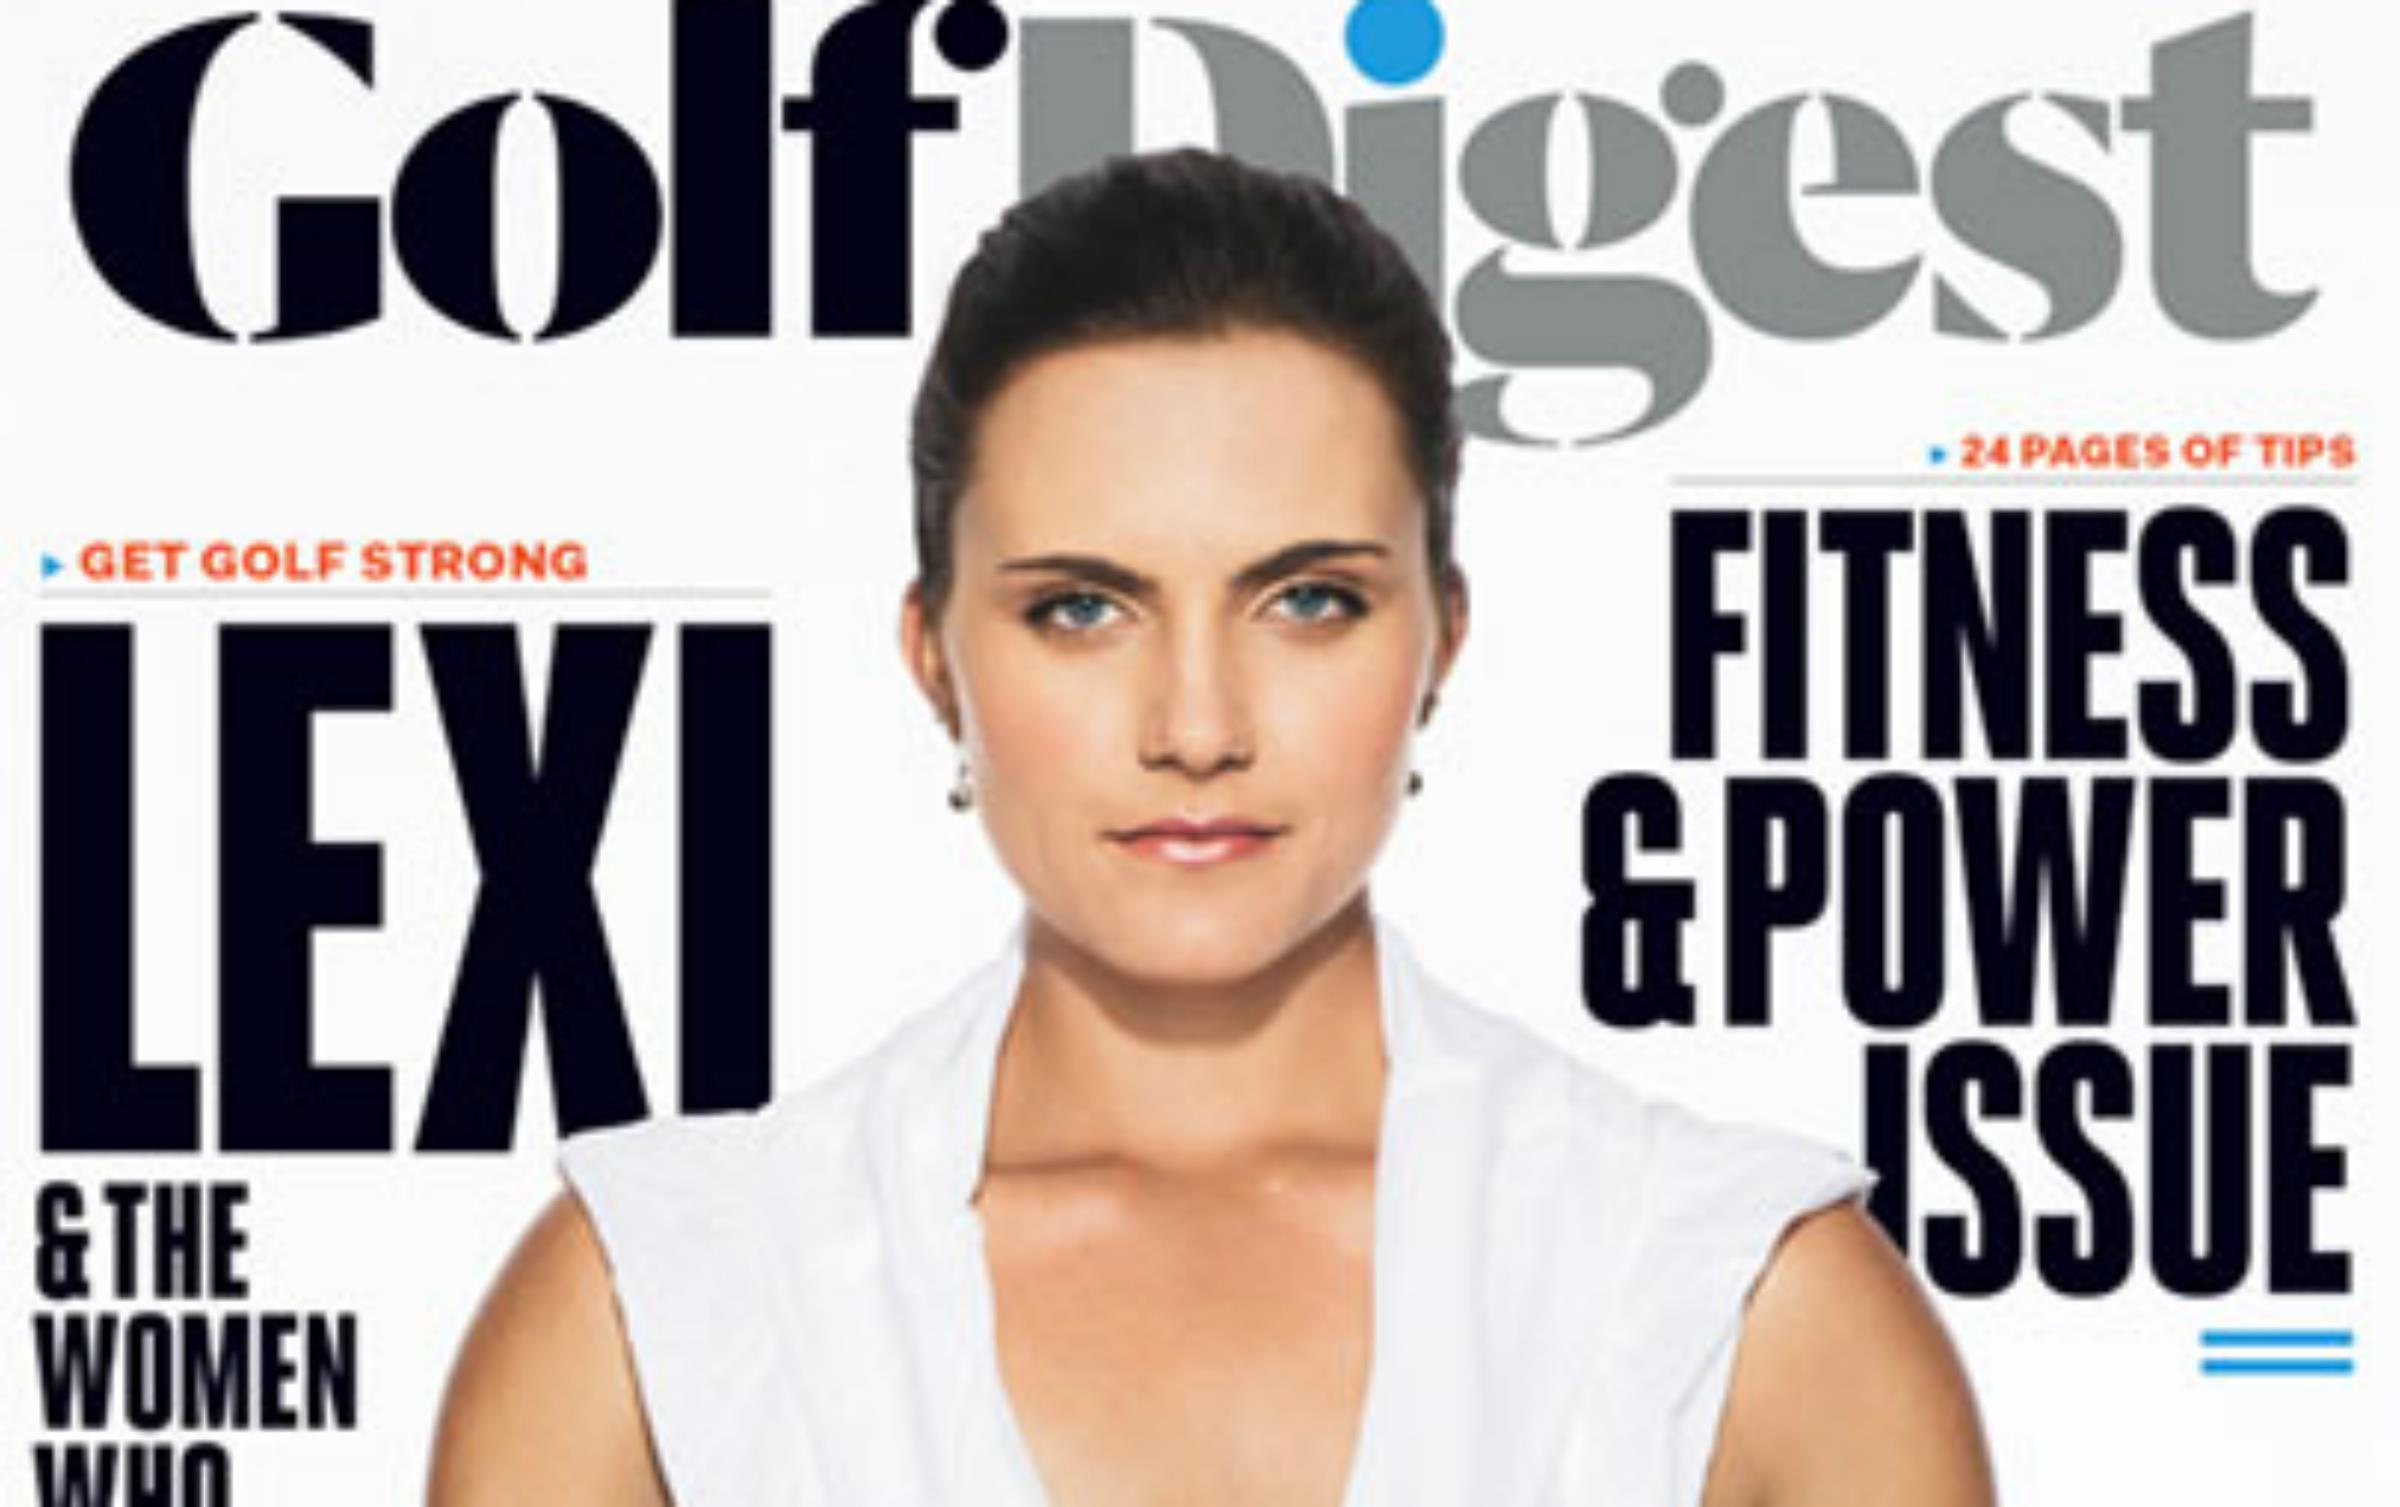 Golf Digest Cover With Topless Lexi Thomspon Controversy